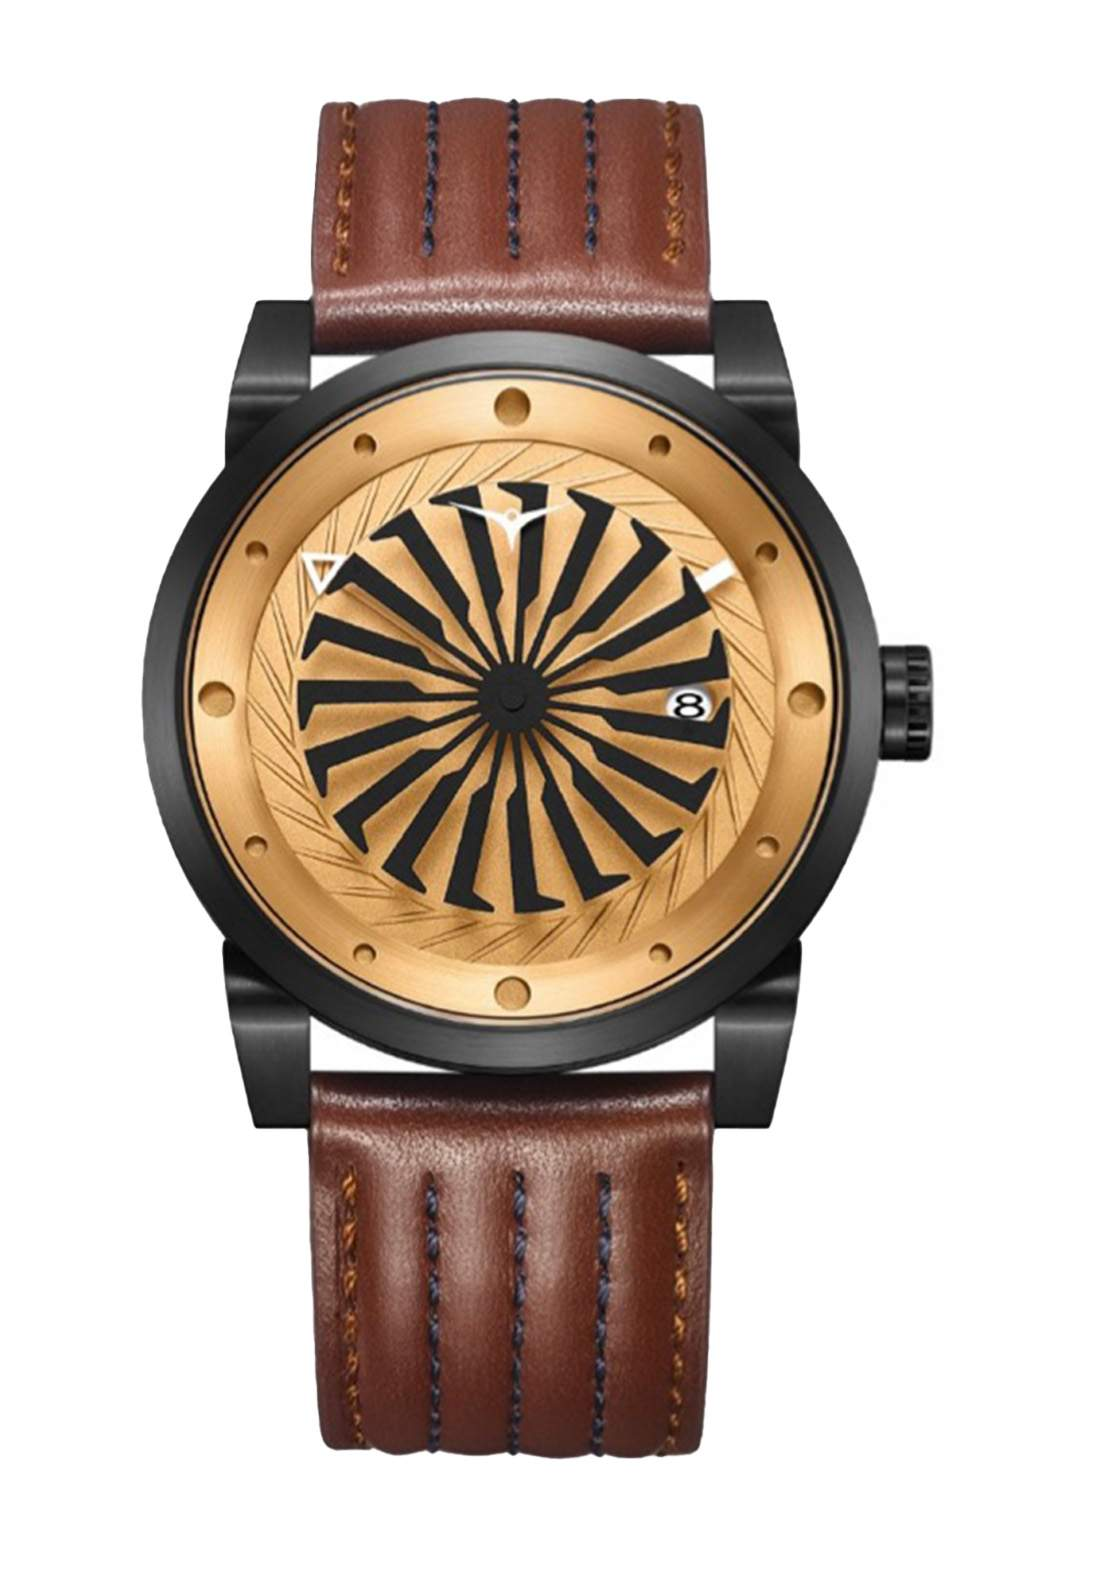 Zinvo Rival Outlaw Watch For Men - Brown  ساعة رجالي